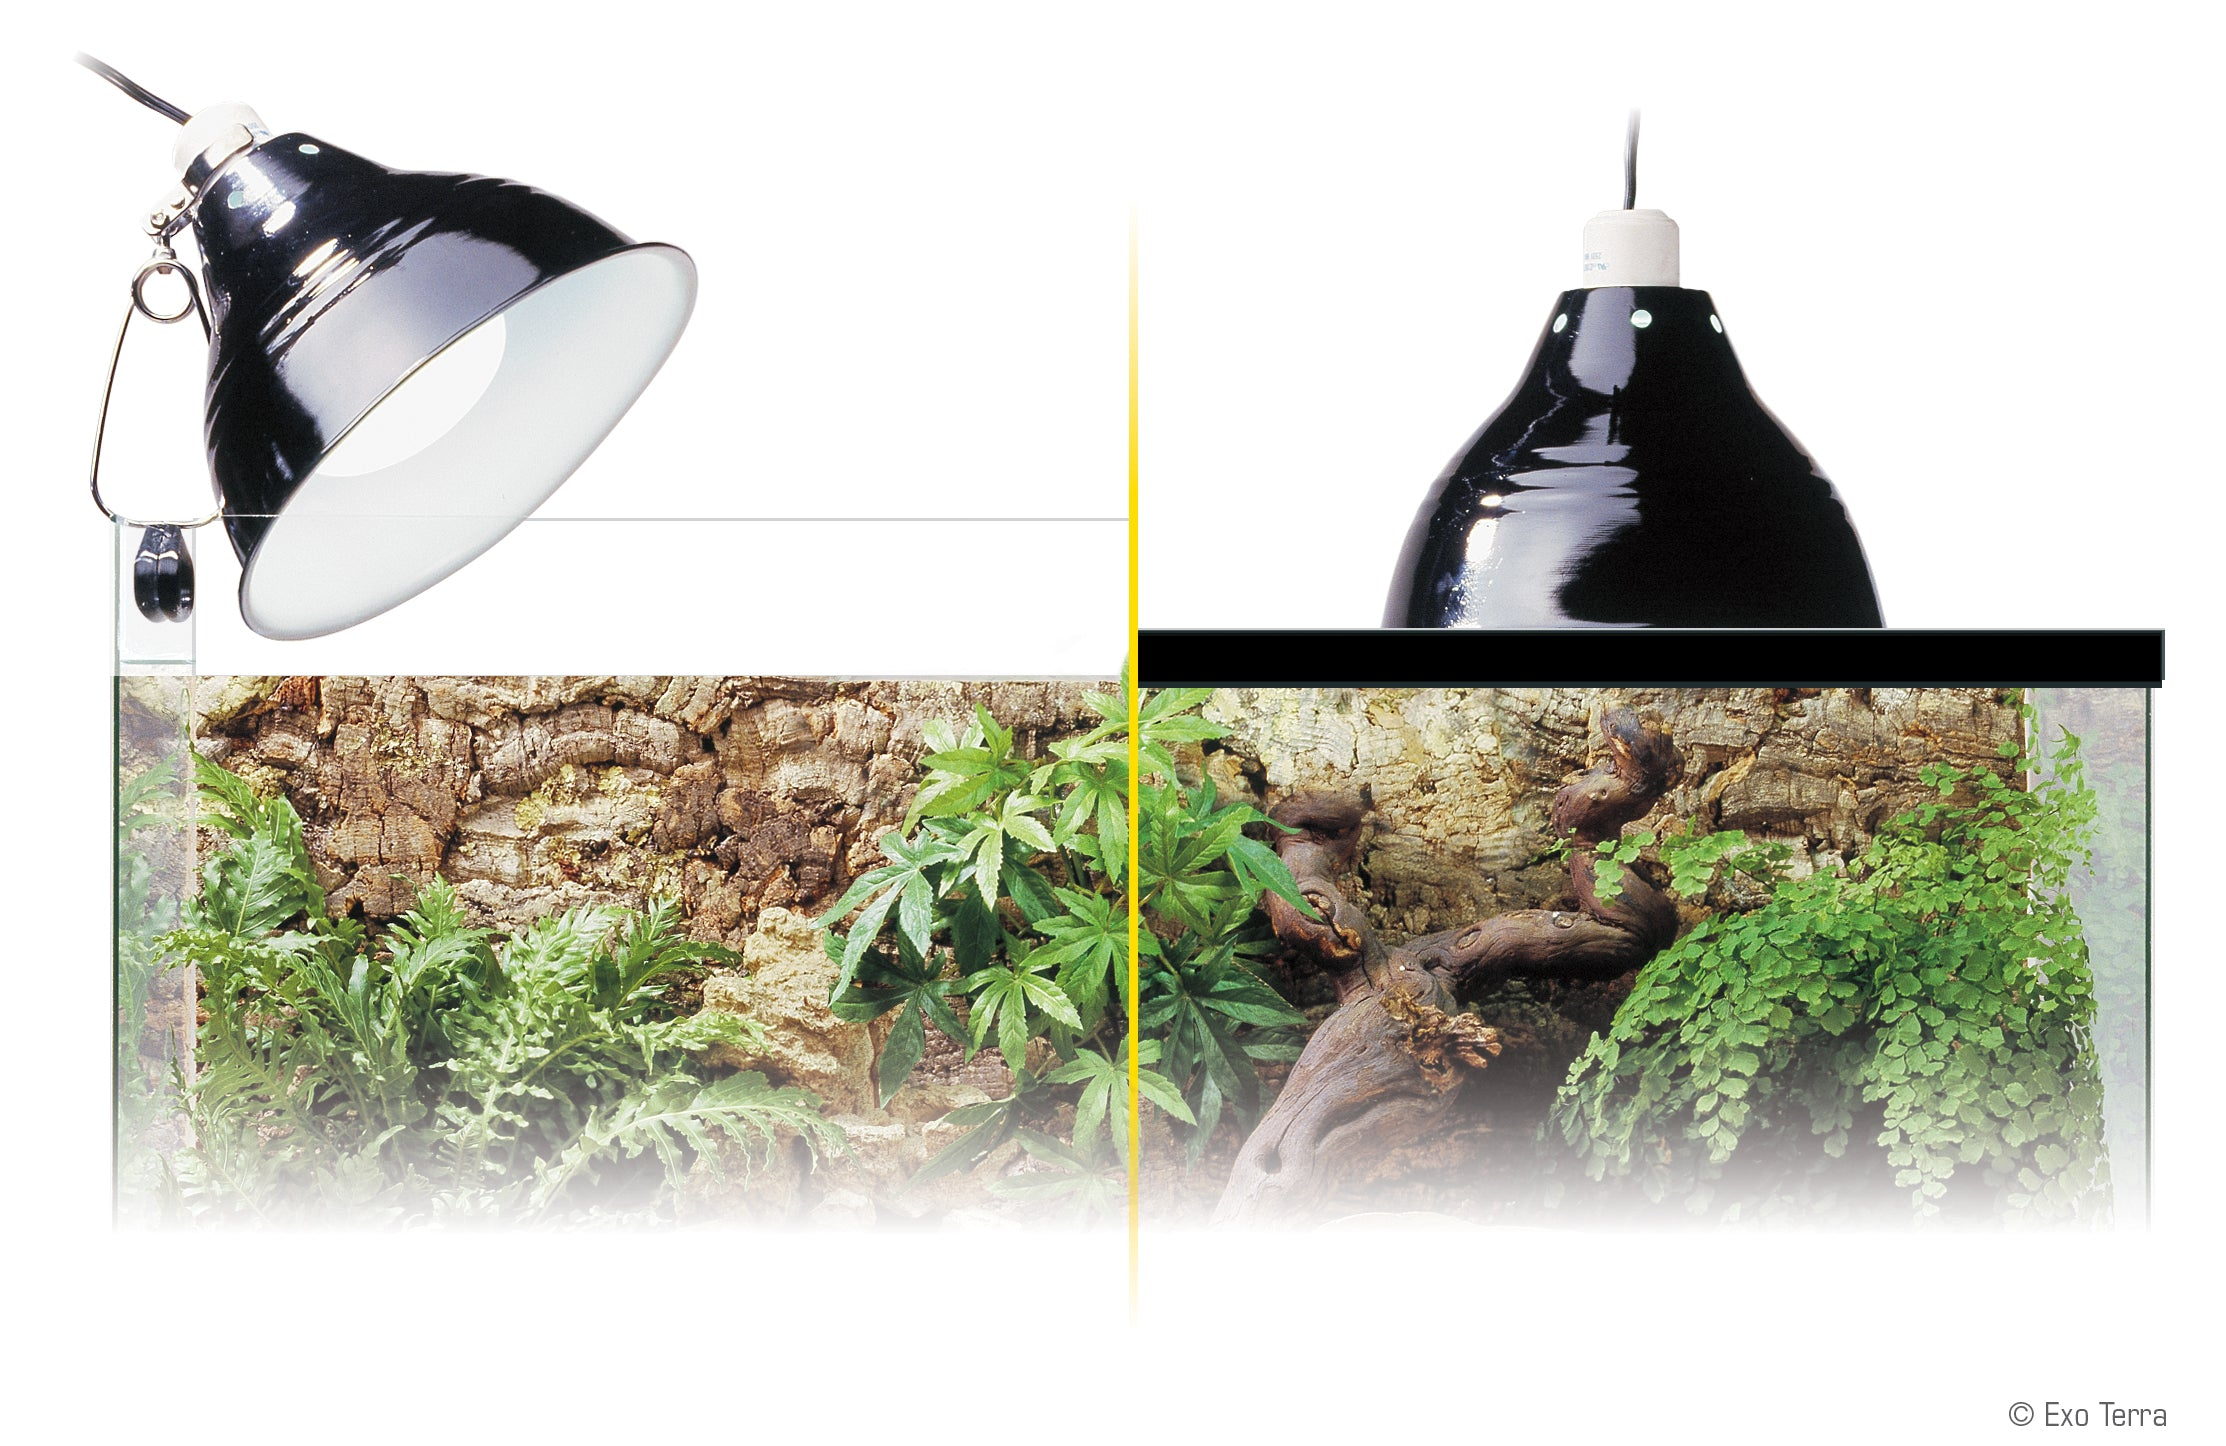 Buy Exo Terra Reptile Glow Light Clamp Lamp Small At The Bio Dude For Only 27 95